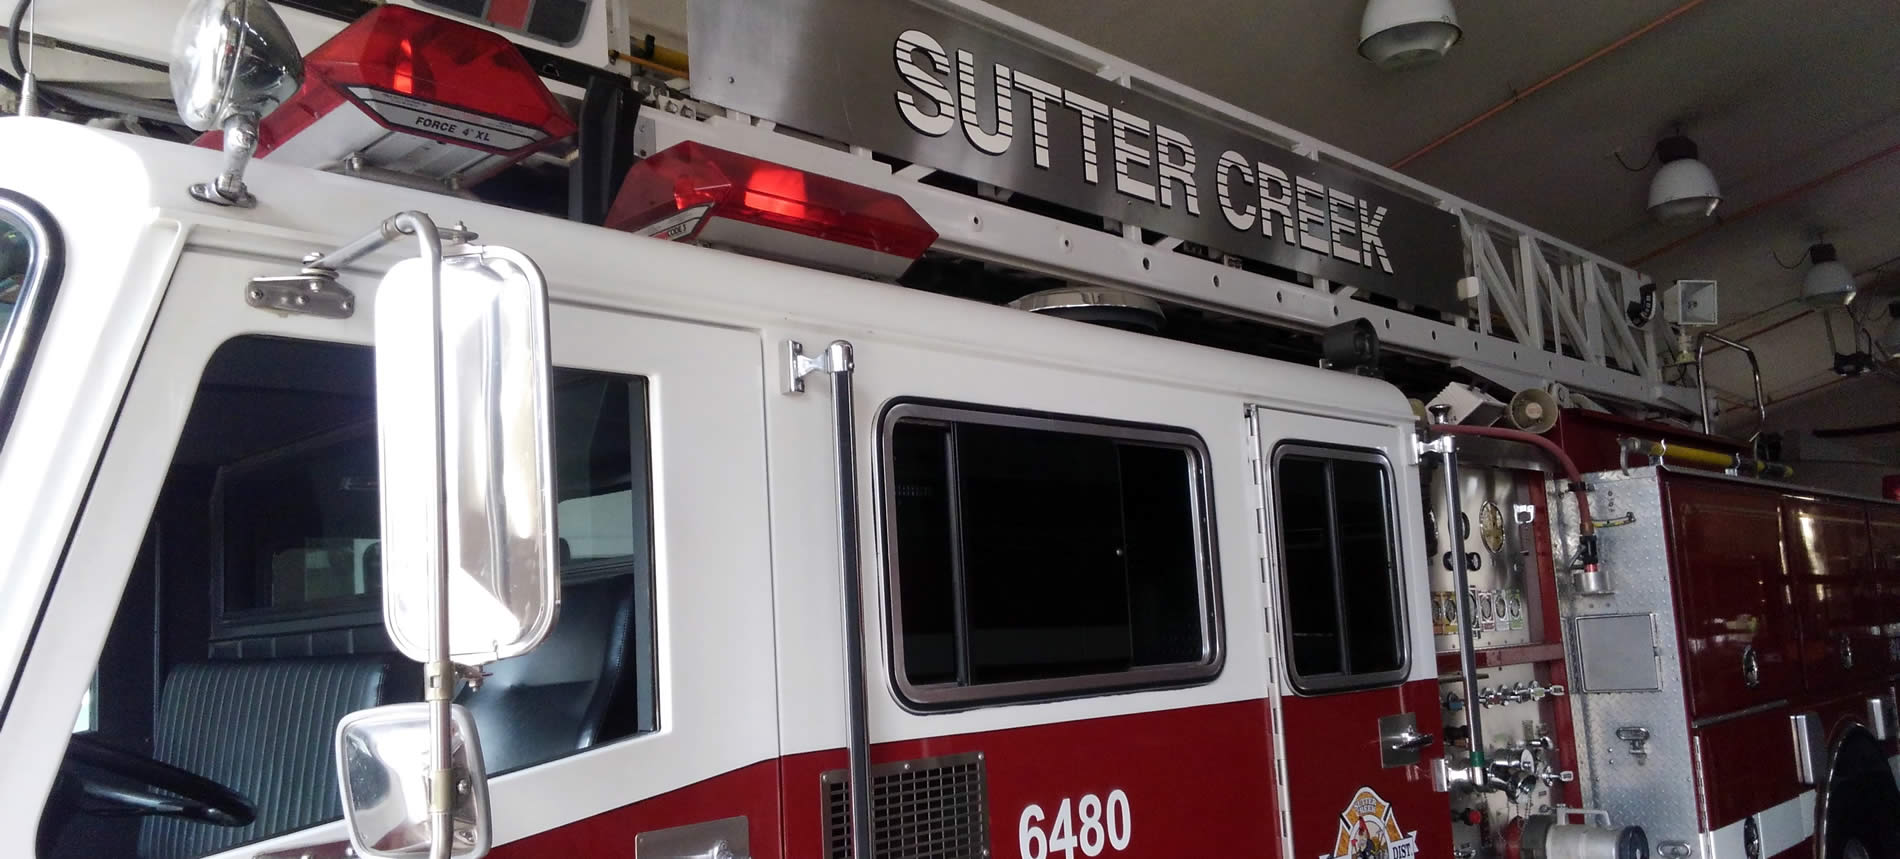 sutter creek fire district truck